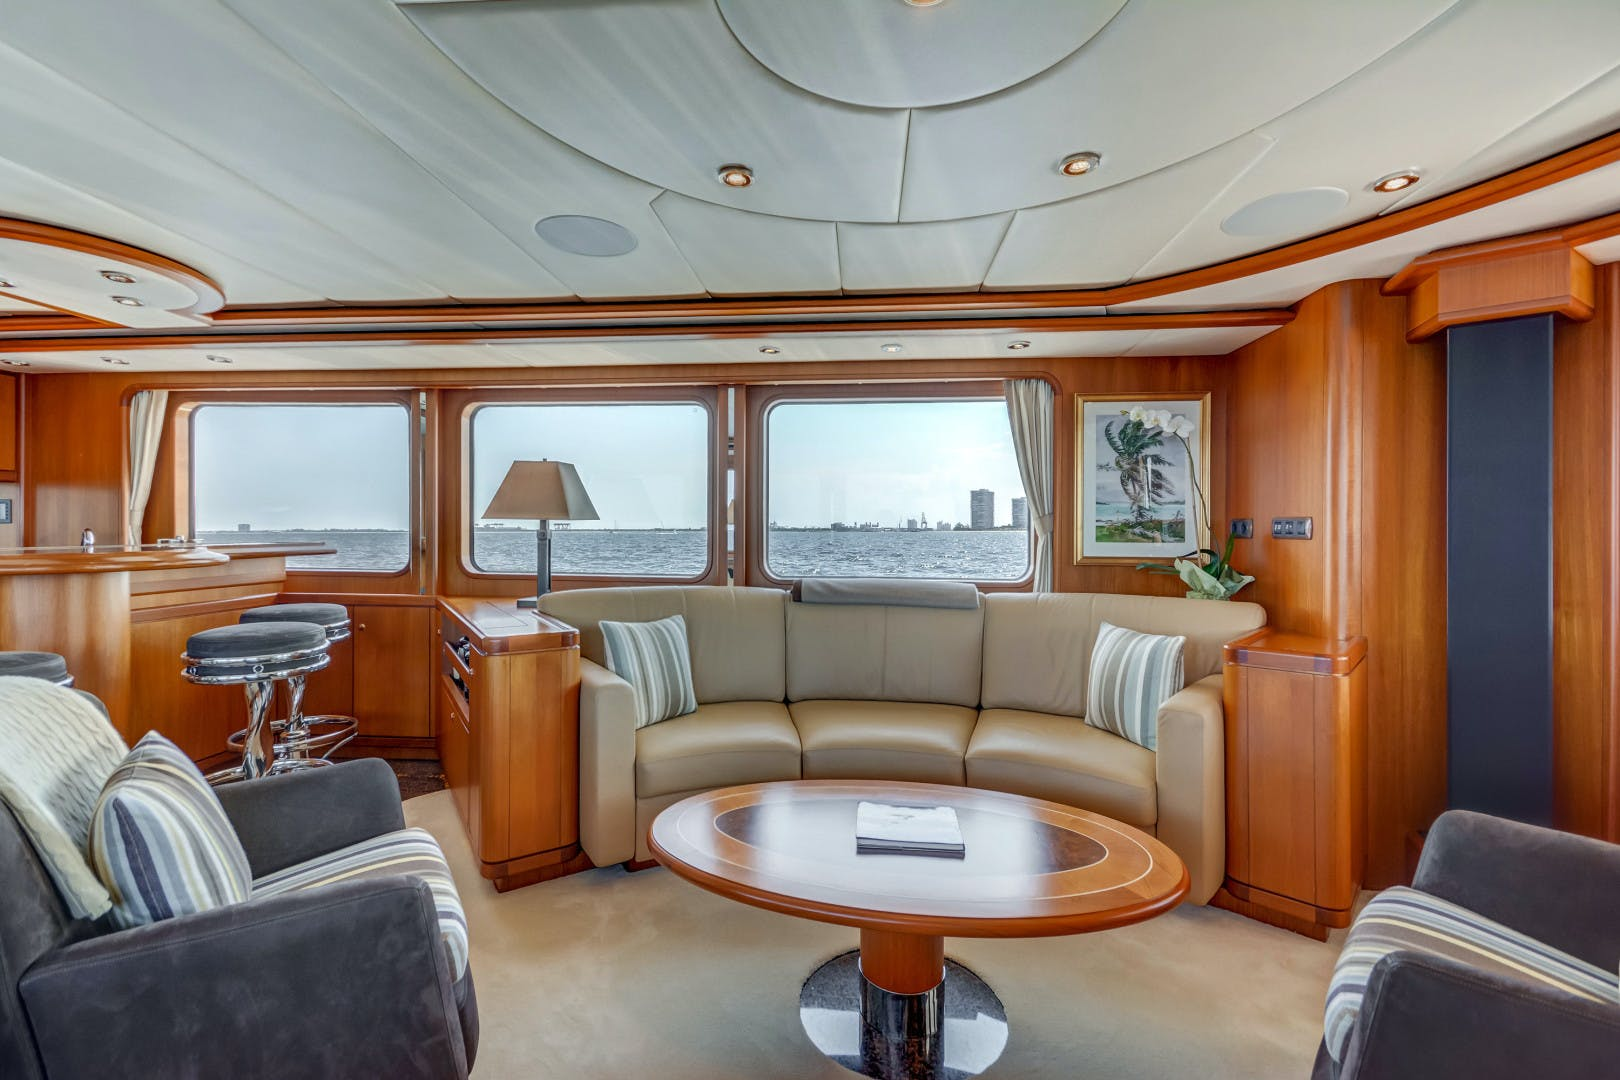 2002 Kuipers Woudsend 84' Raised Pilothouse LRC GUSTO | Picture 6 of 31